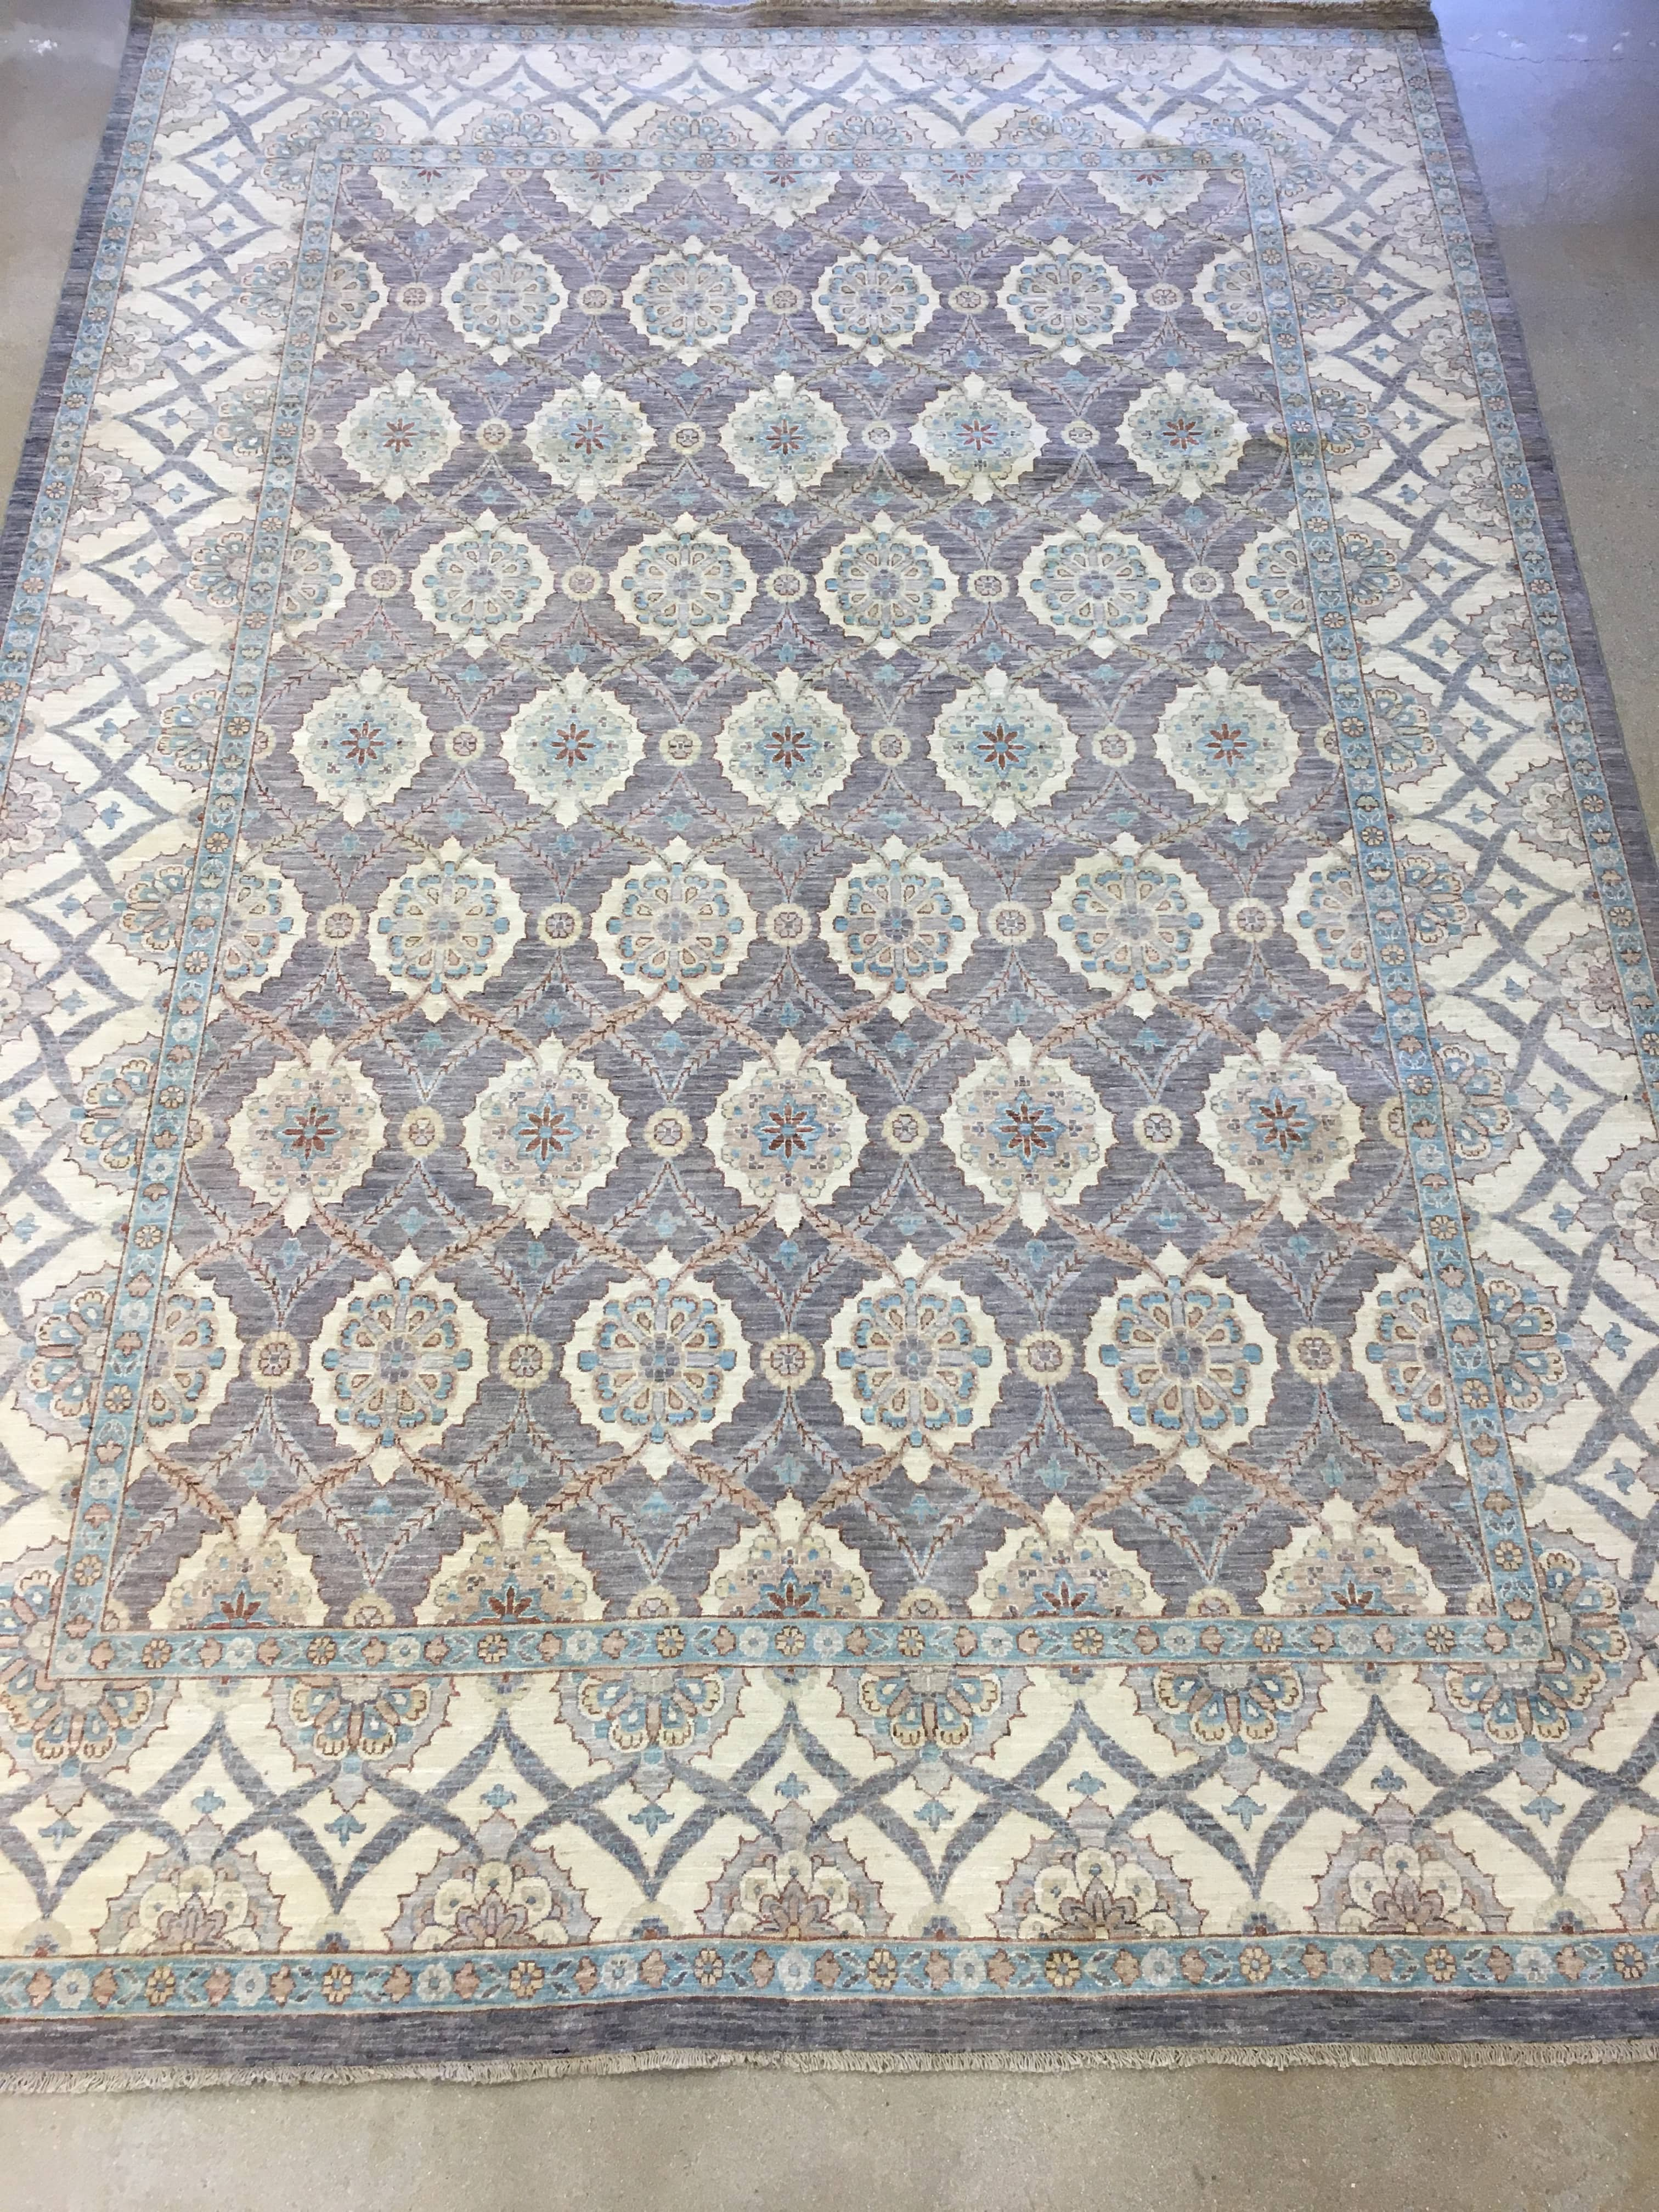 Rug Scottsdale Az Pv Rugs Overview Min